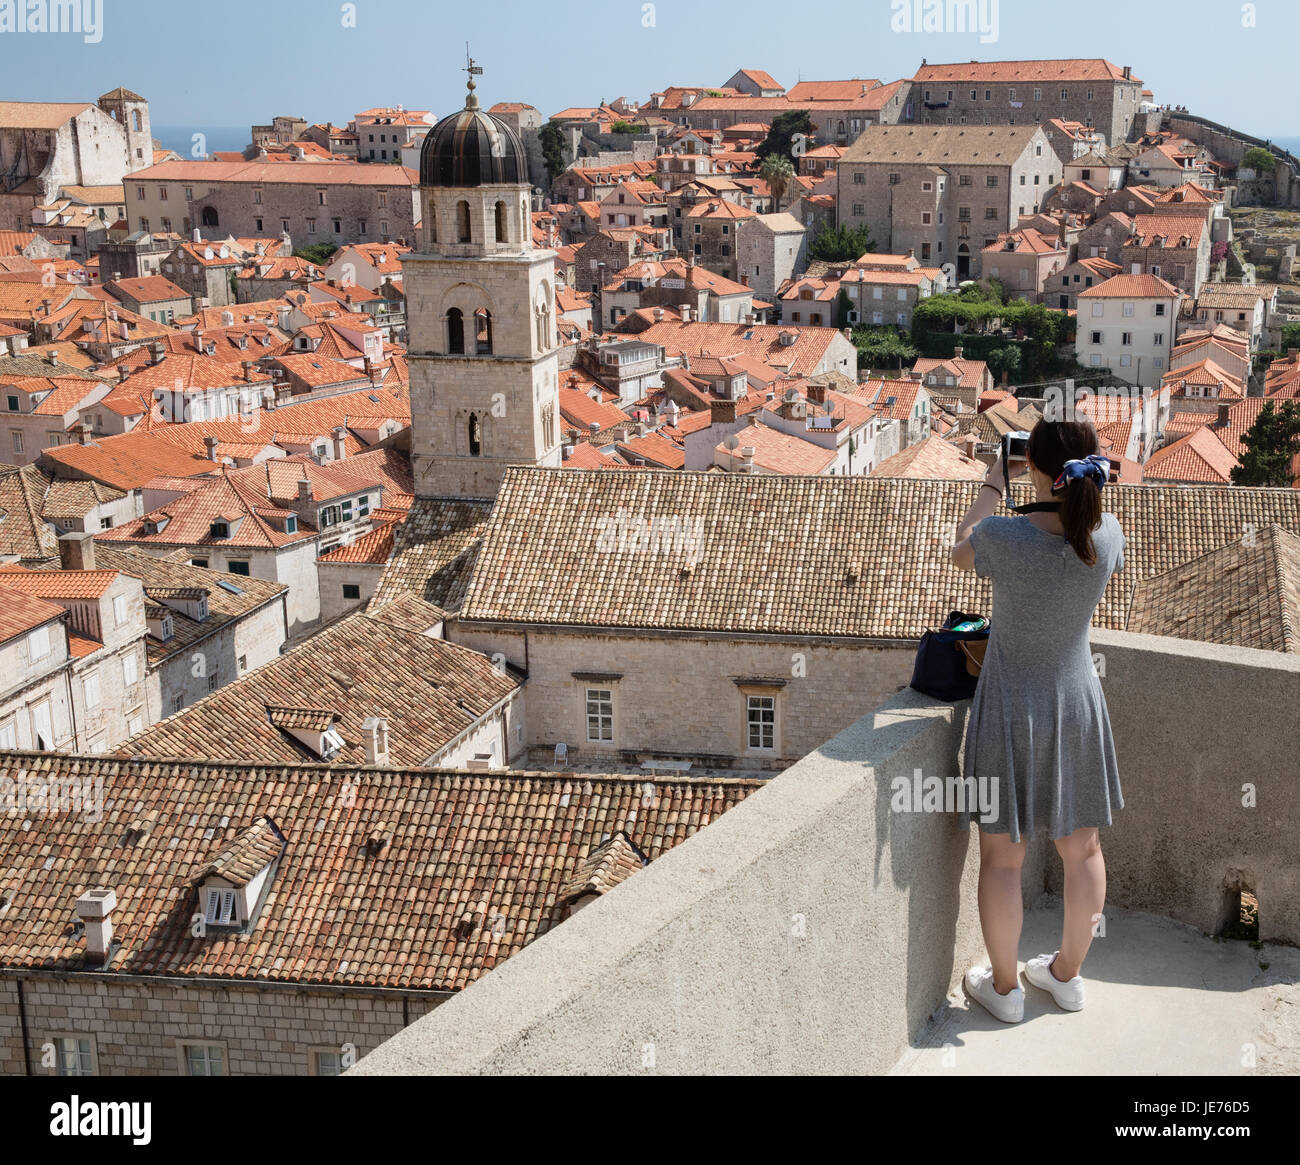 An Asian tourist taking a photograph of the medieval city of Dubrovnik on the Dalmation coast of Croatia Stock Photo